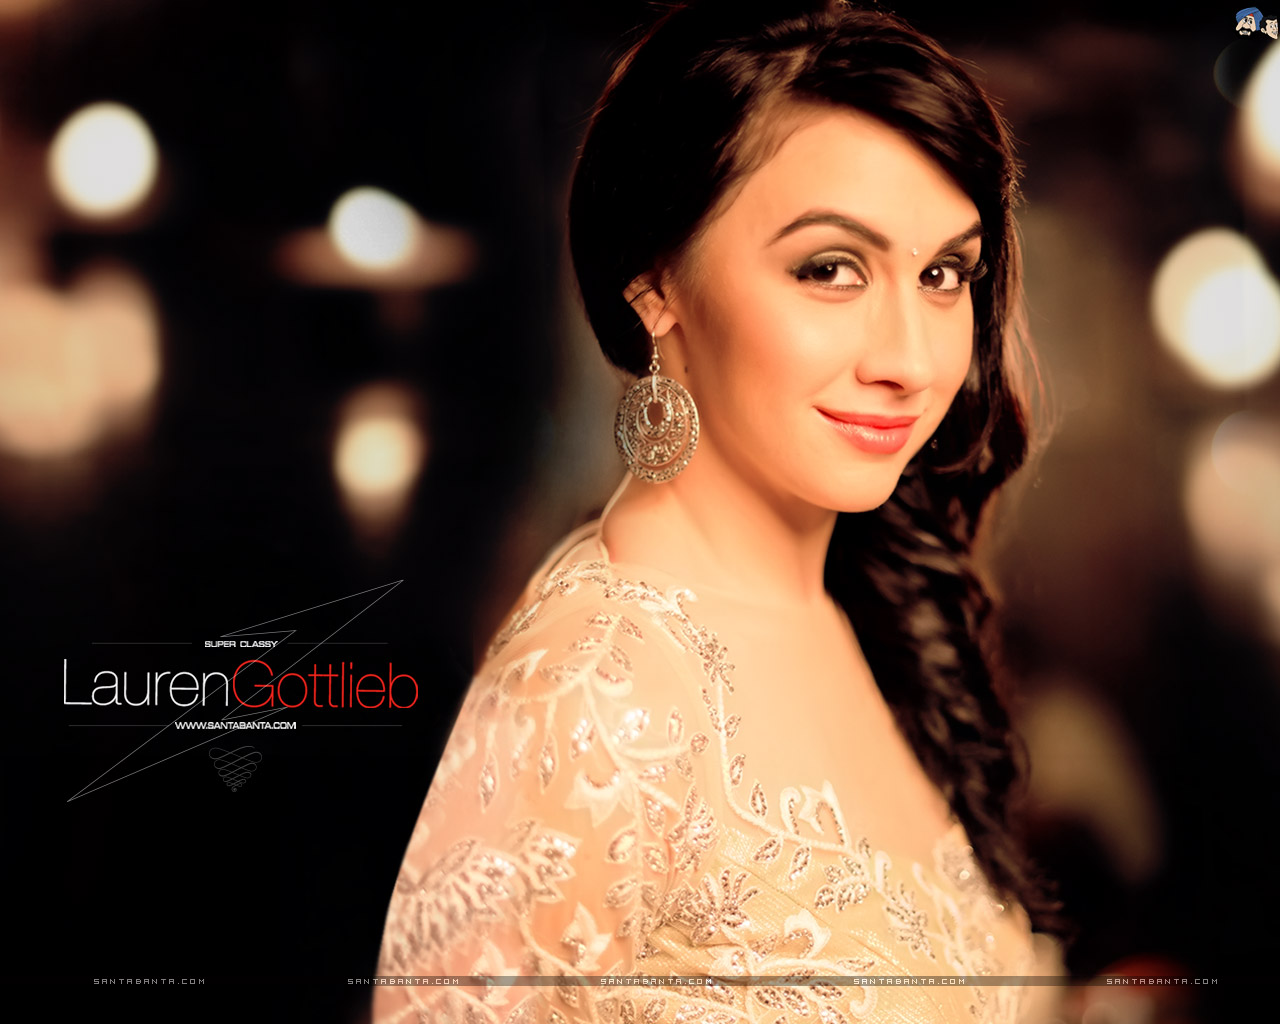 Lauren Gottlieb Wallpaper7